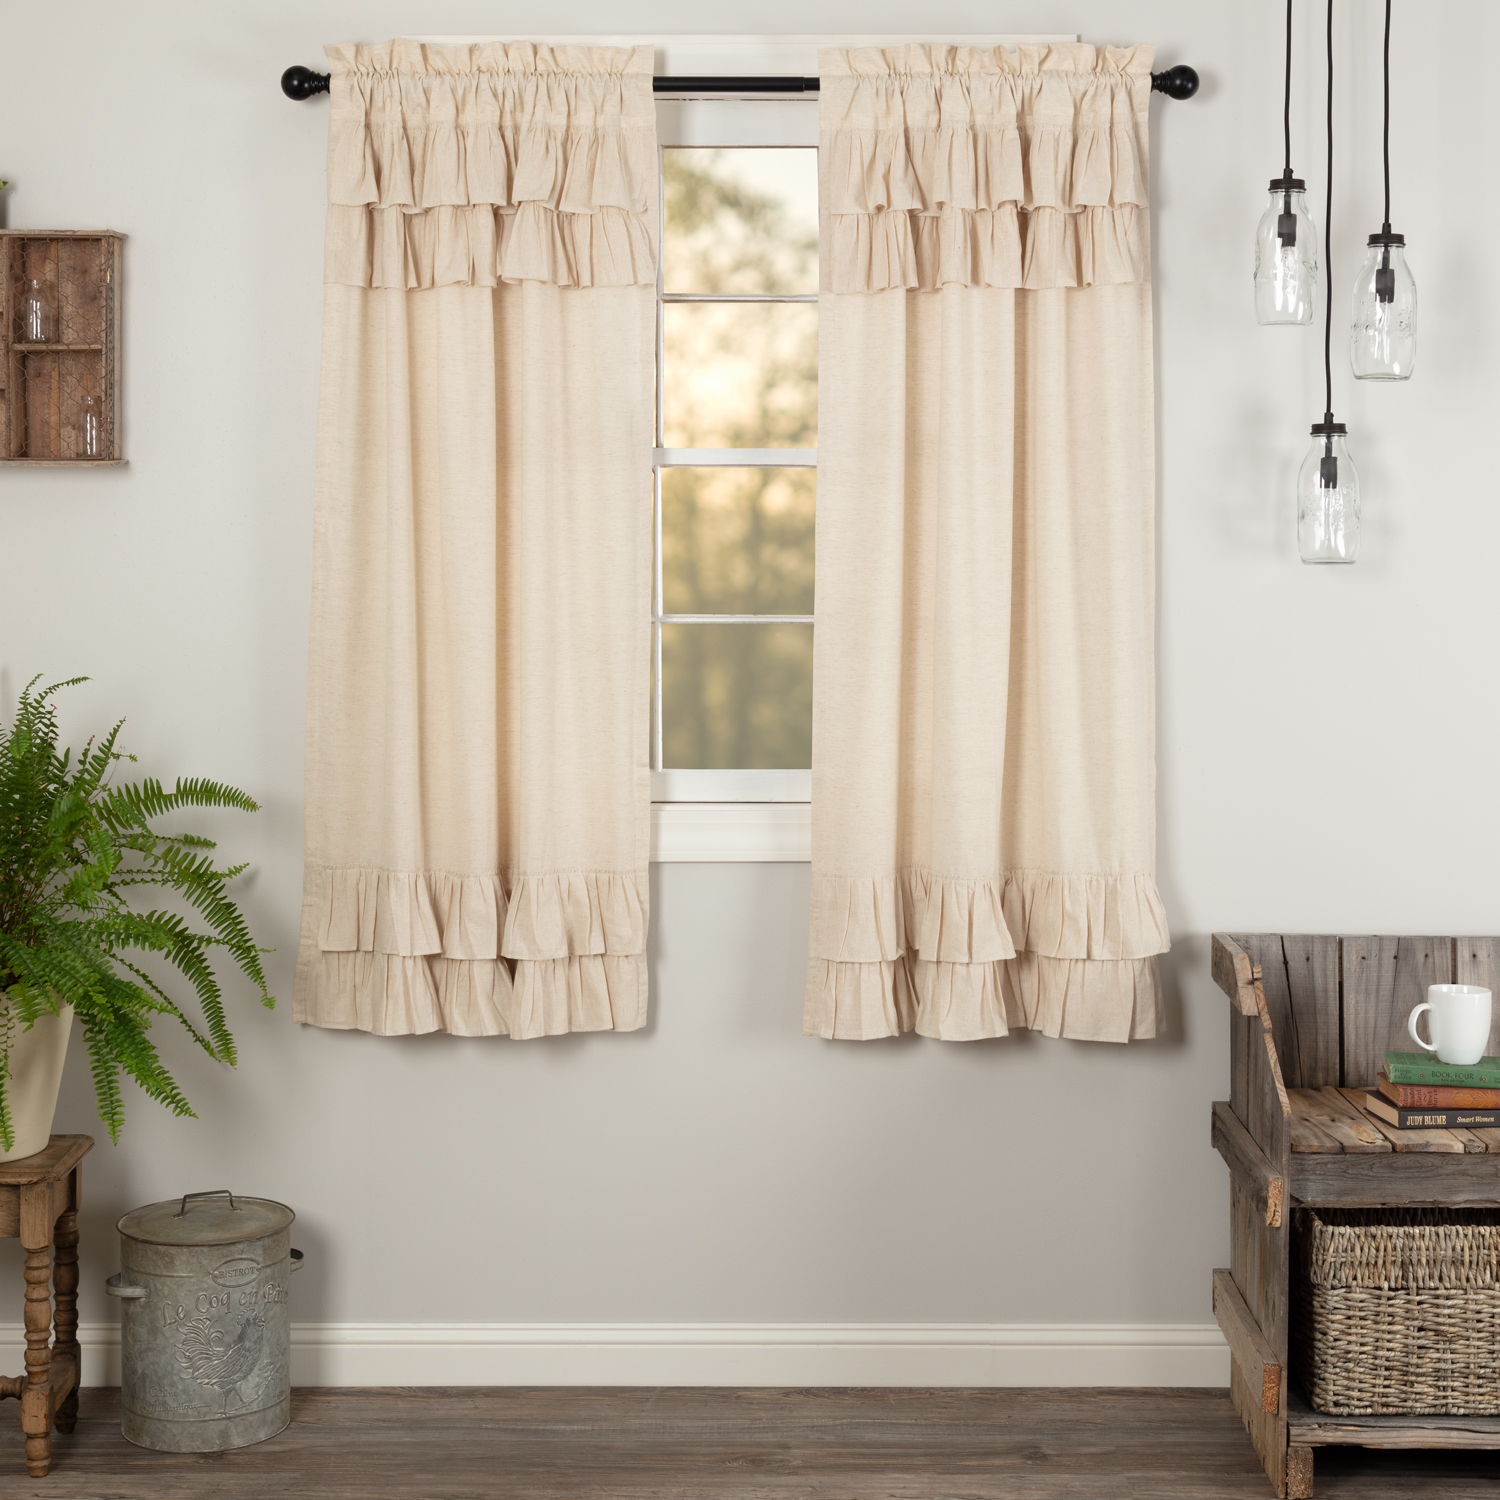 Simple Life Flax Natural Ruffled Short Panel Set of 2 63x36